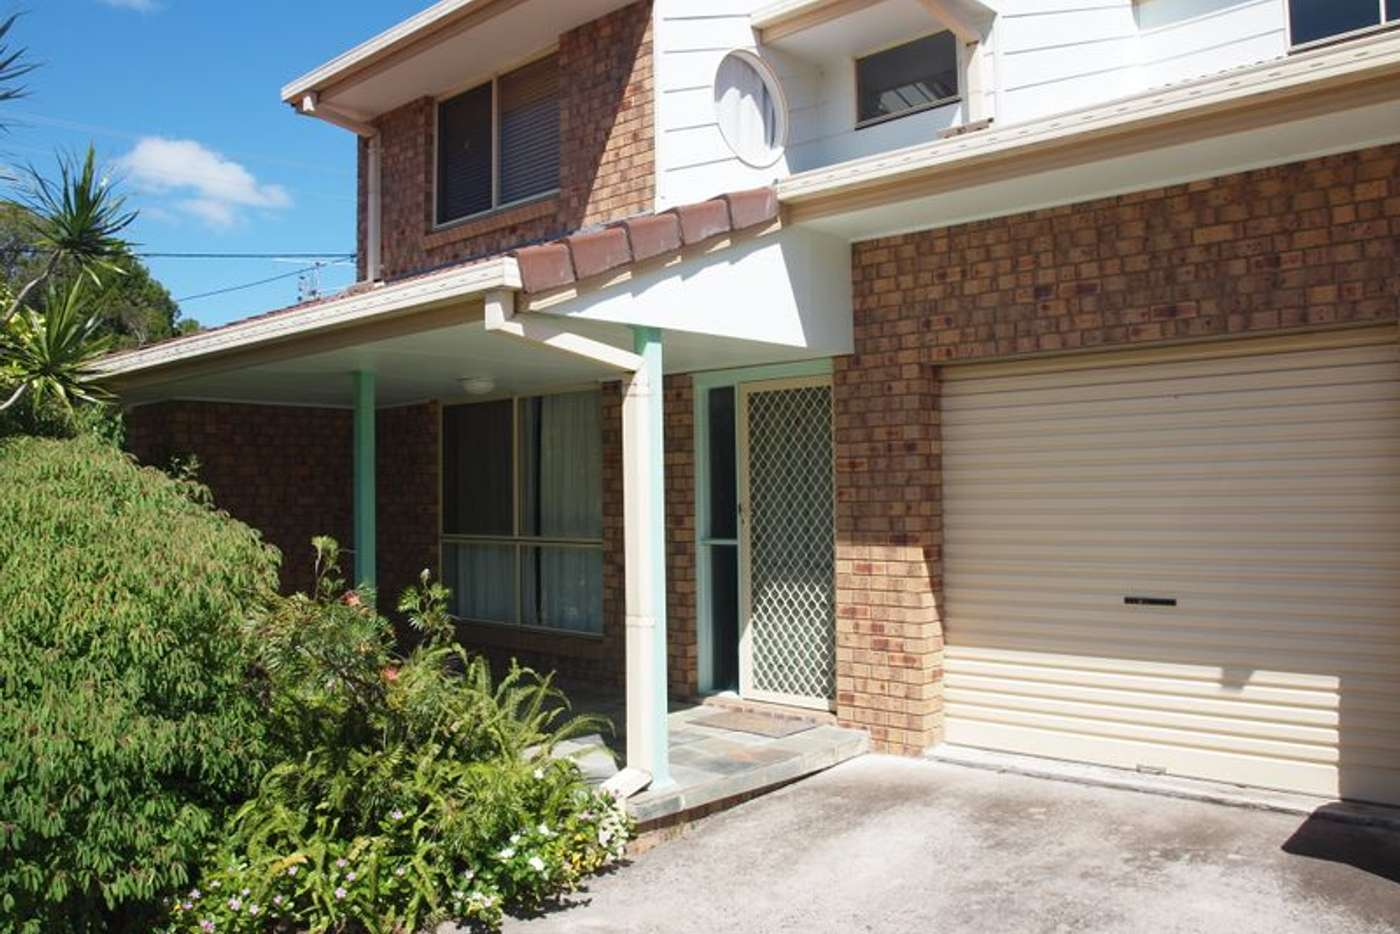 Main view of Homely unit listing, 2/89 Charles Street, Iluka NSW 2466